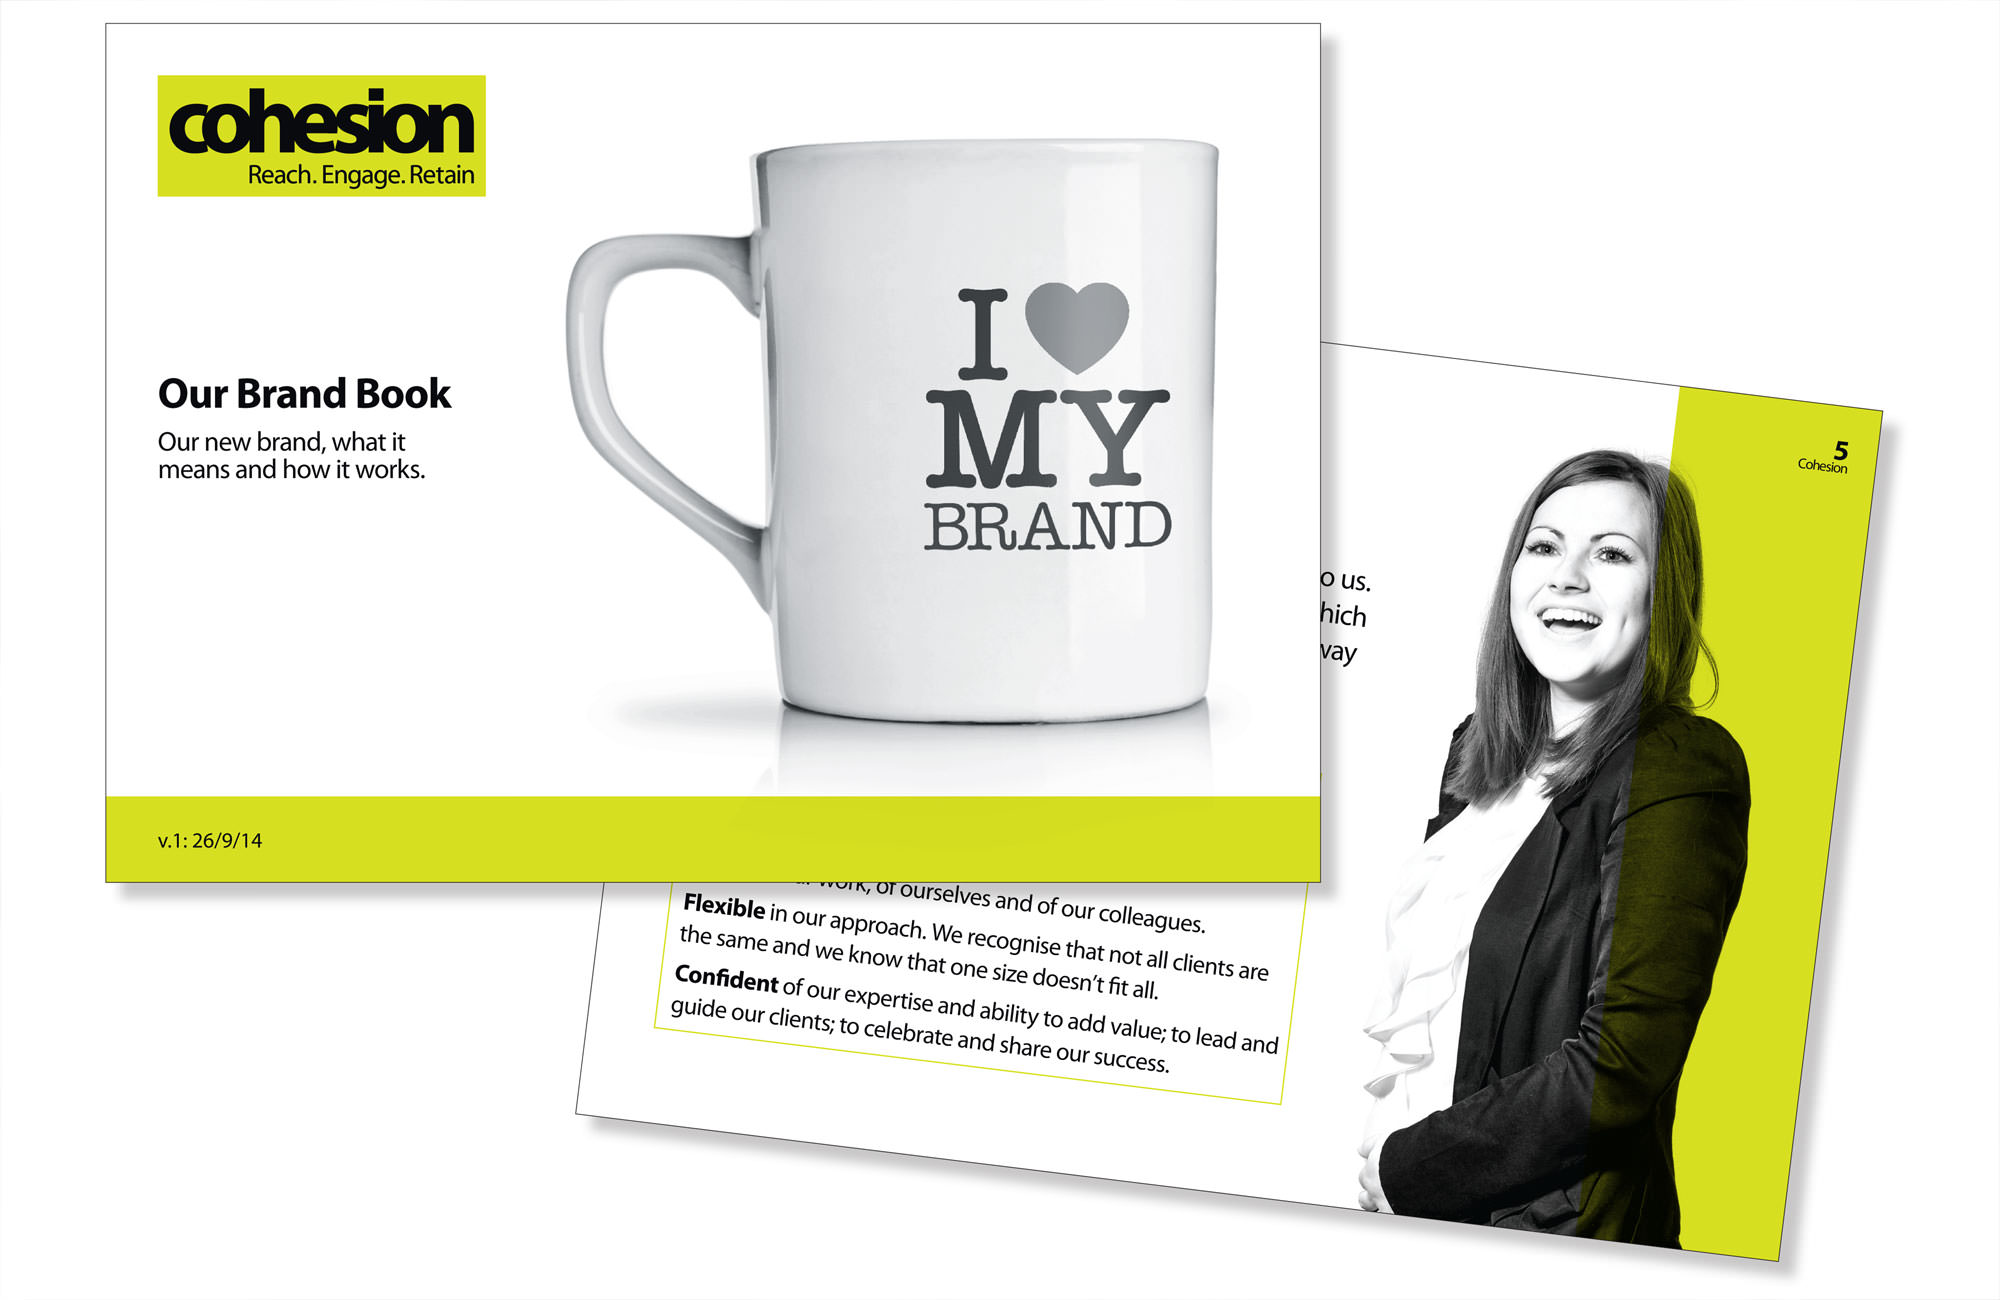 Cohesion. Our brand book.